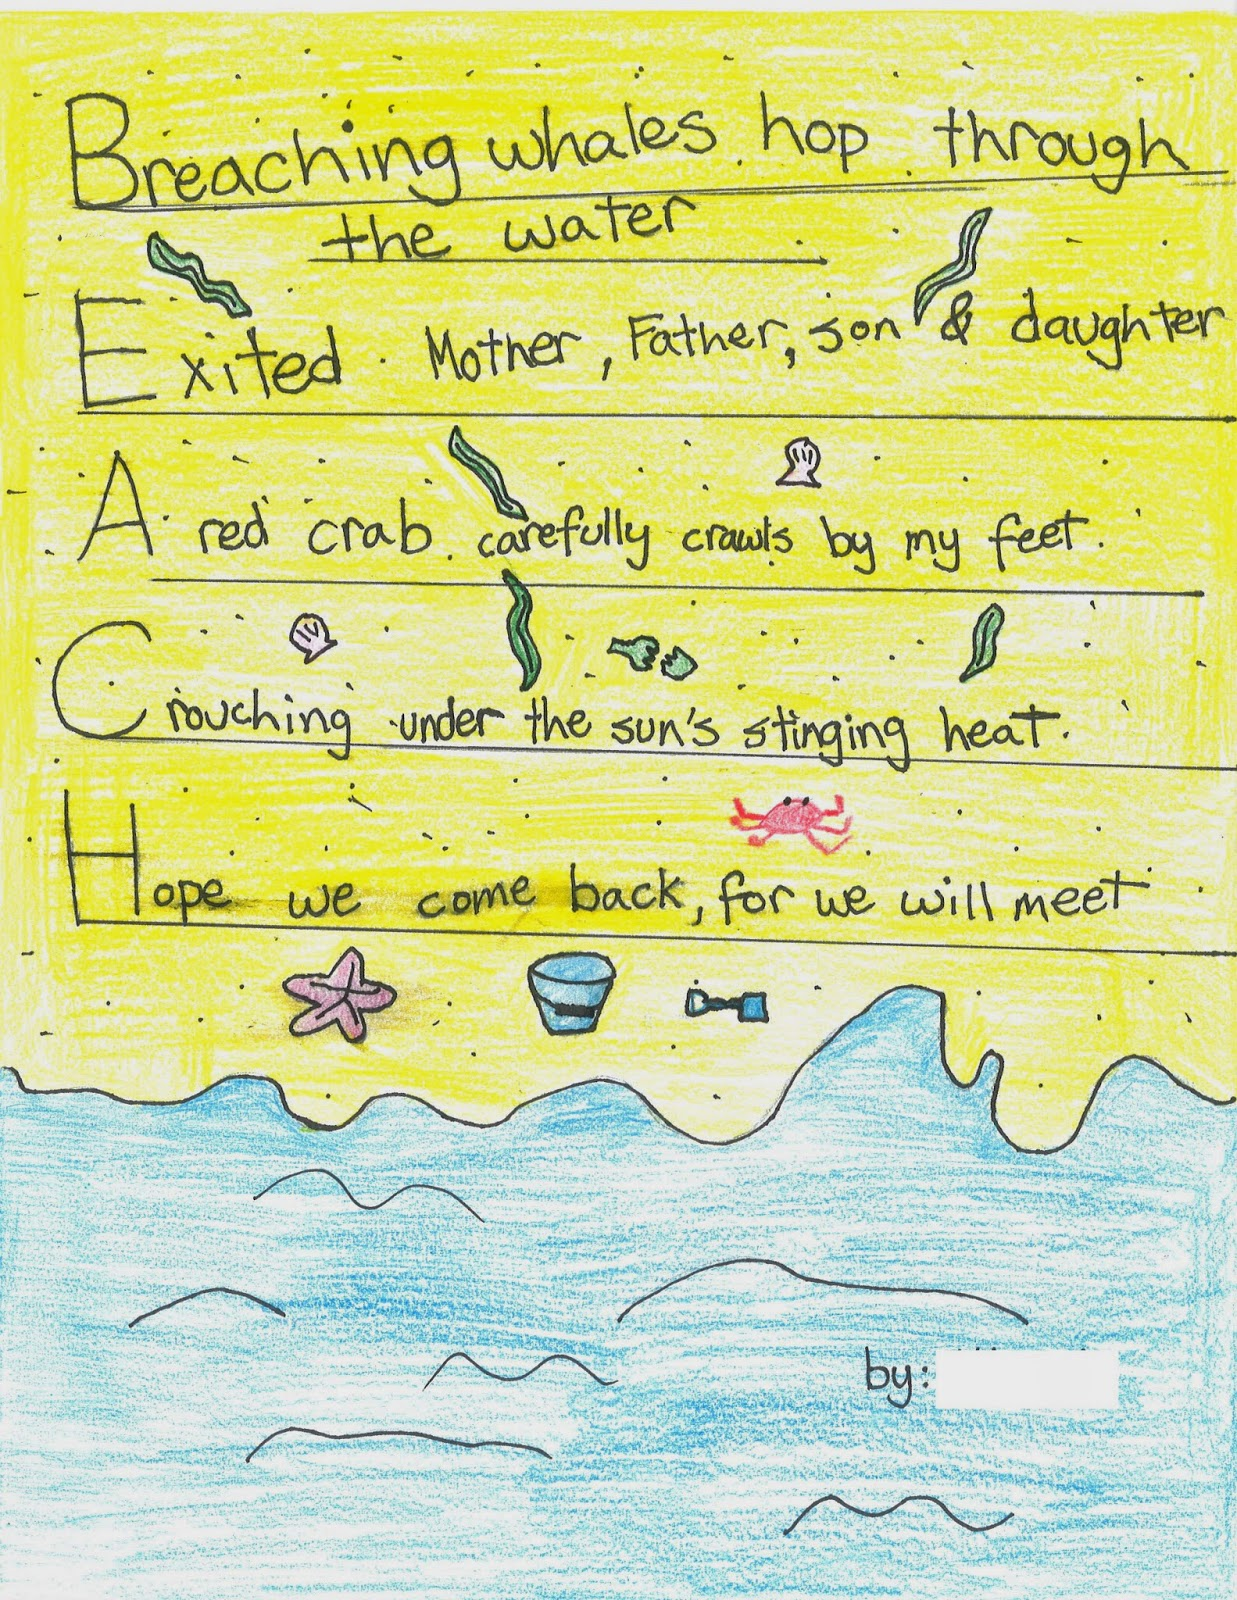 BEACH acrostic by a.w.